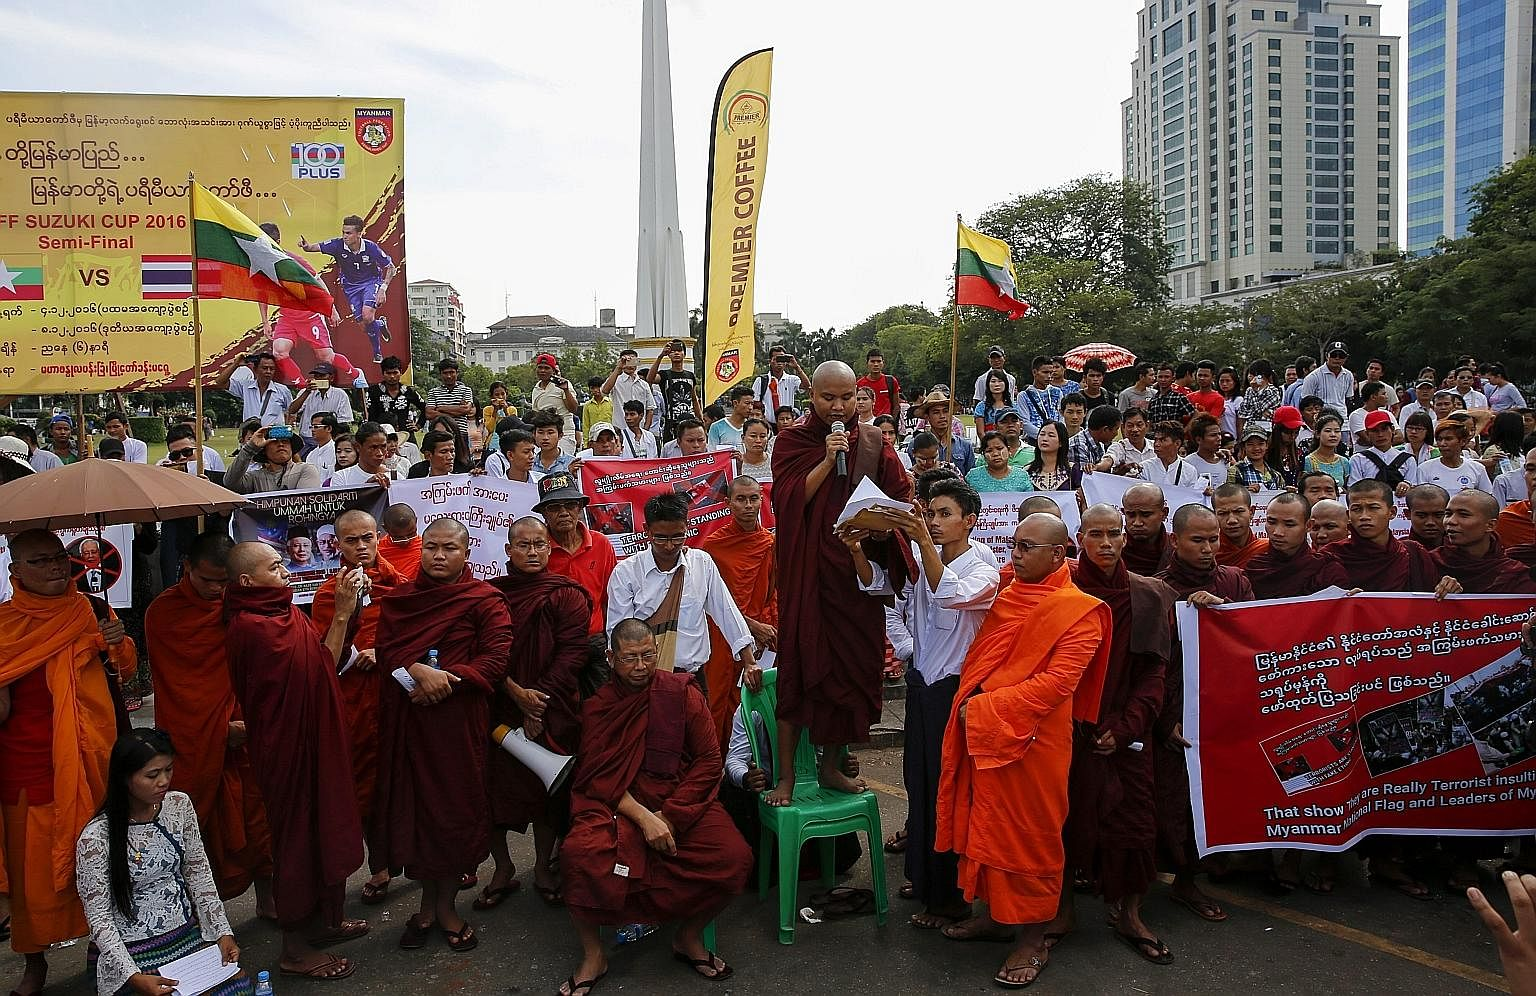 Myanmar Buddhist monks leading a protest in Yangon yesterday, condemning Mr Najib and demanding that he not pressure the Myanmar government over the Rohingya issue. PM Najib flanked by (from far left) PAS deputy president Tuan Ibrahim Tuan Man, Deput